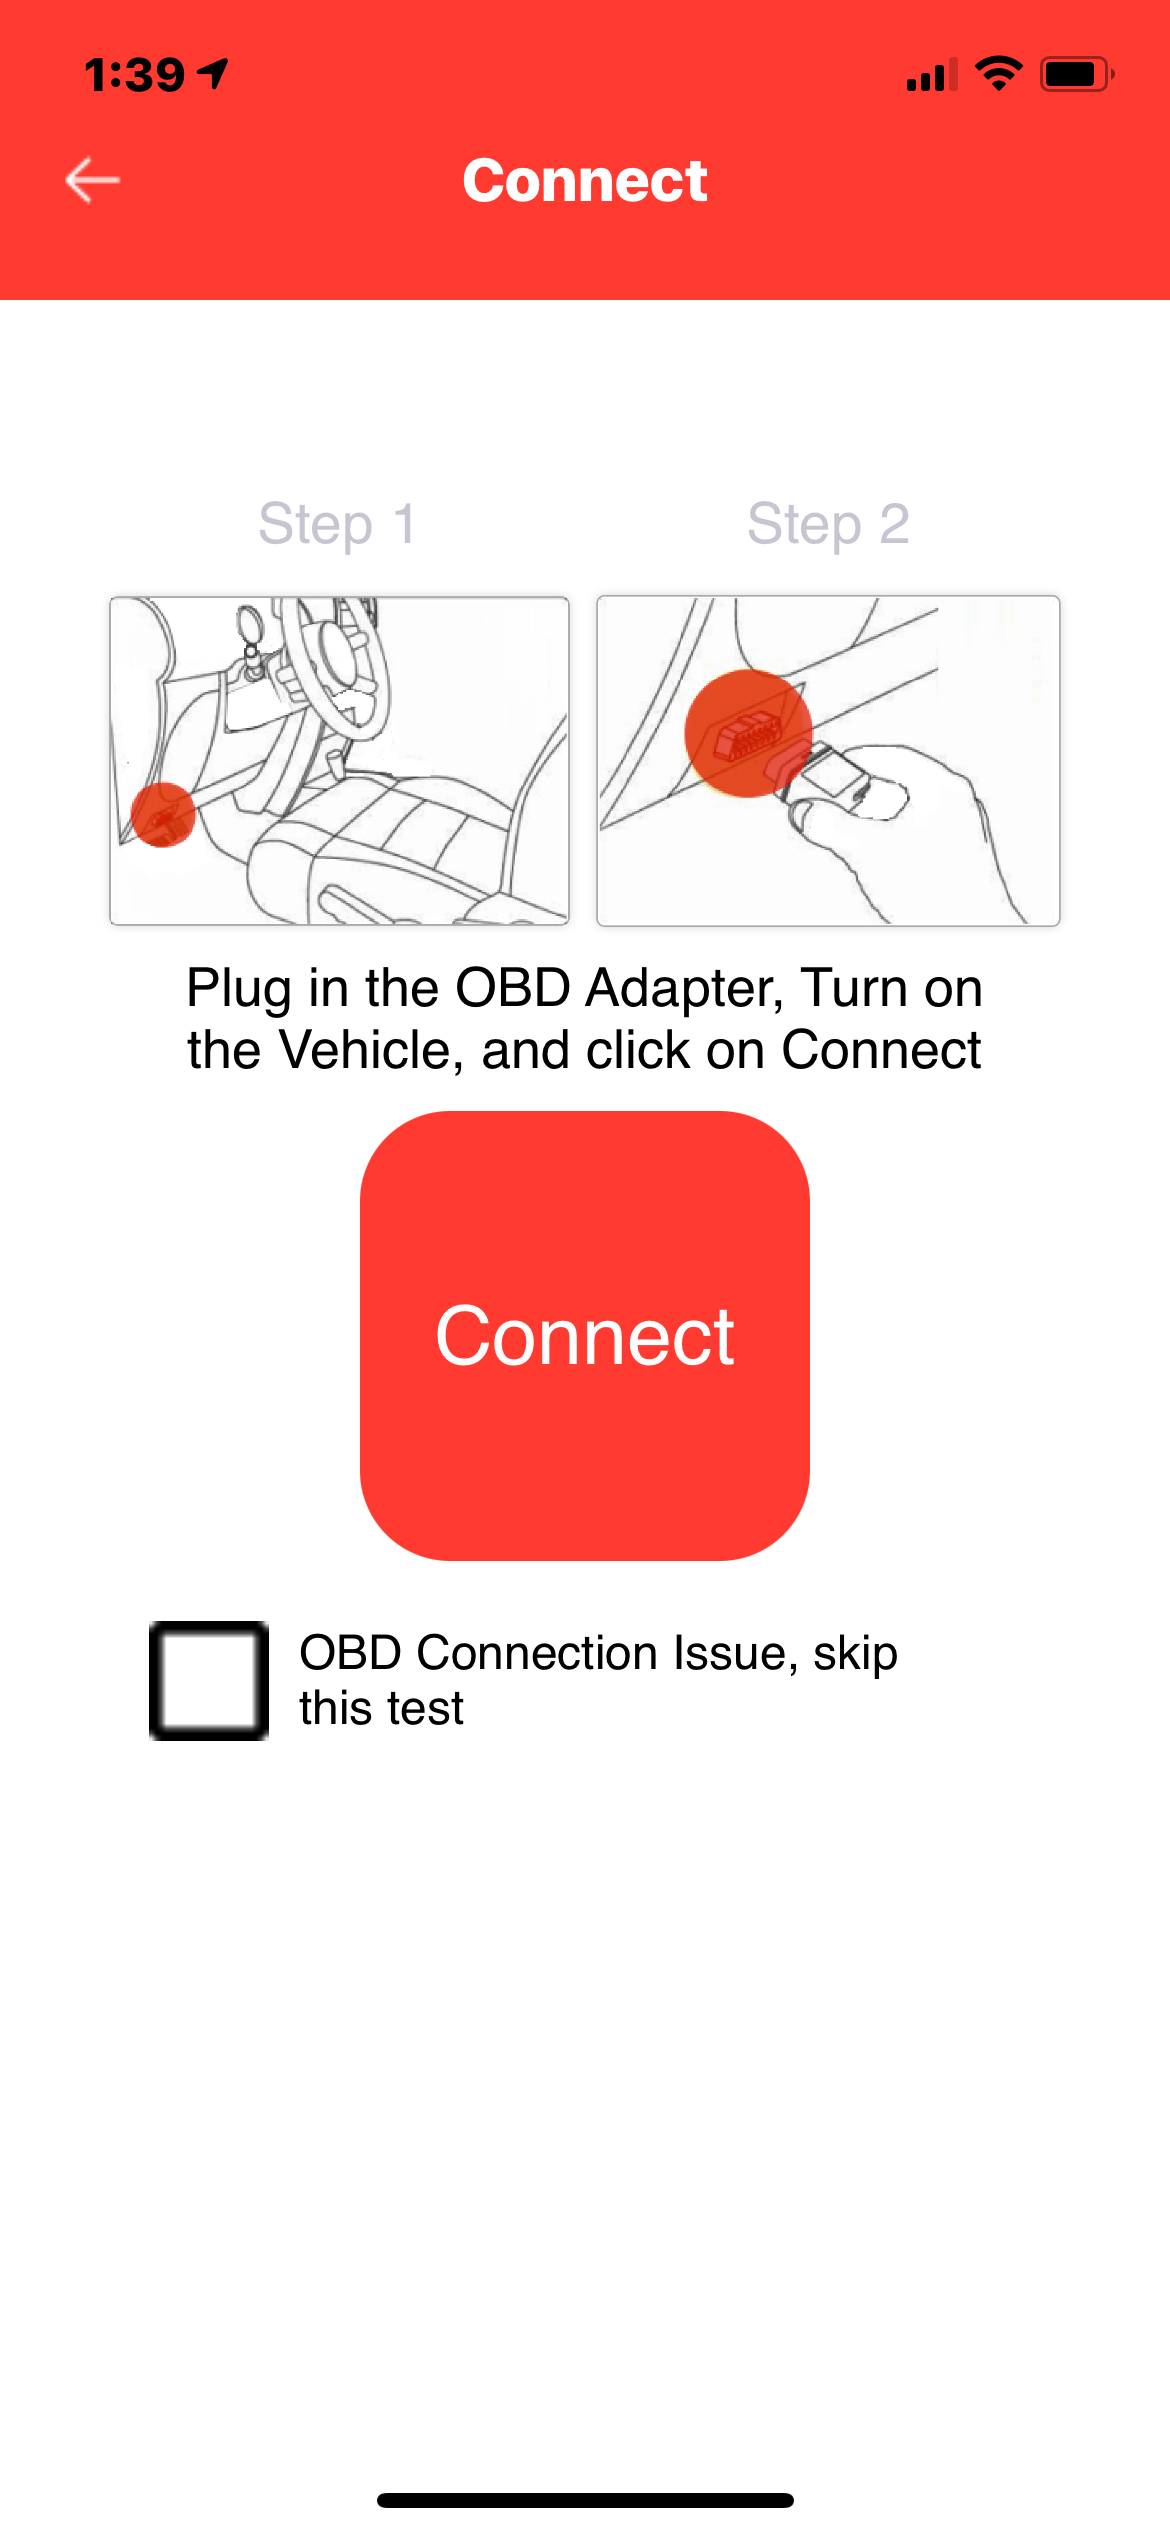 Vehicle Appraisal App - OBD Connection